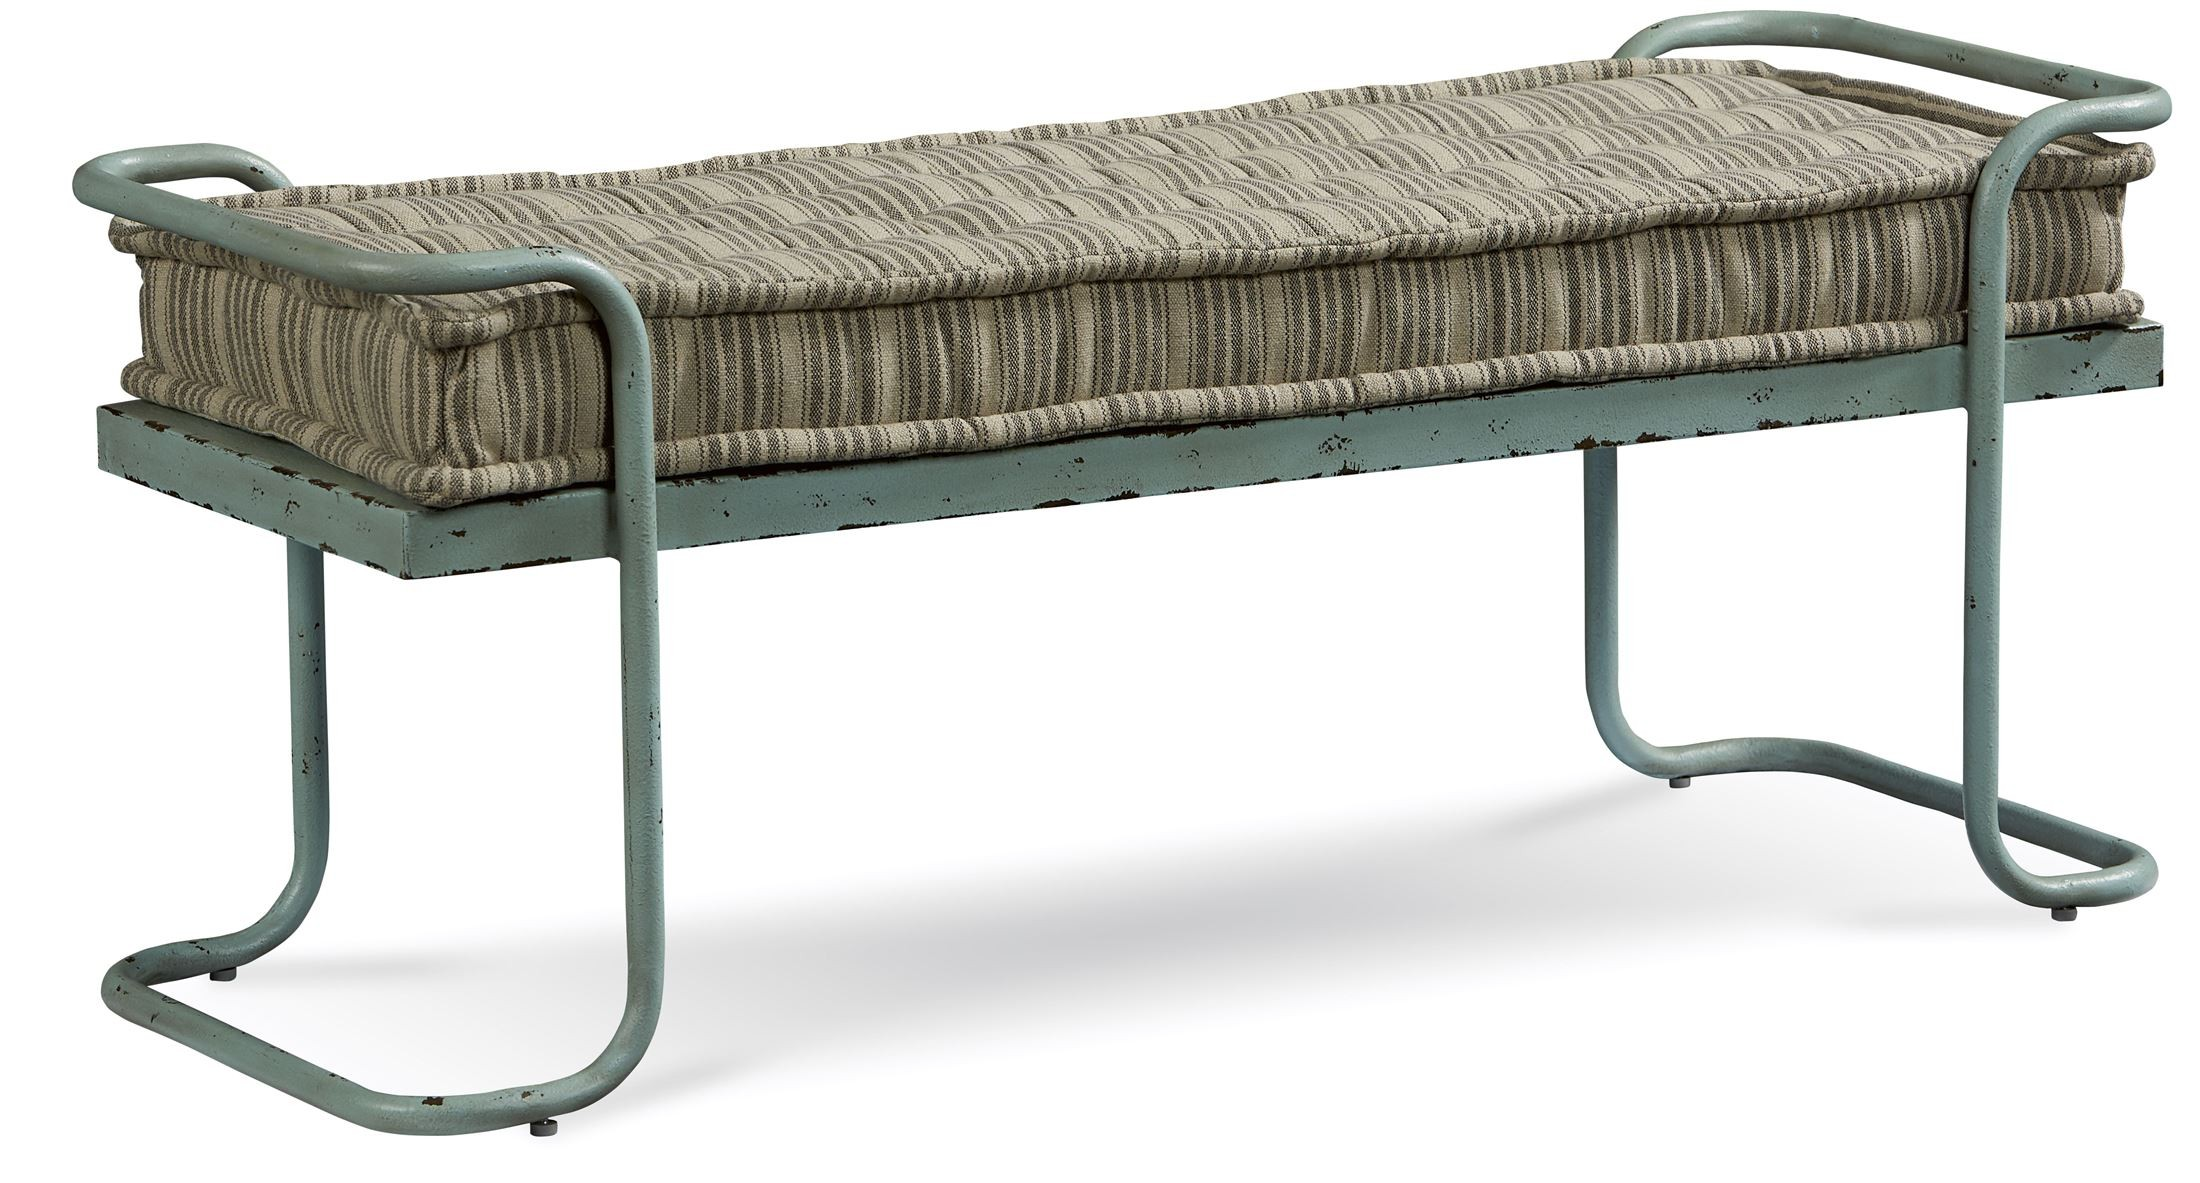 Epicenters Williamsburg Bed Bench From Art 223149 2621 Coleman Furniture